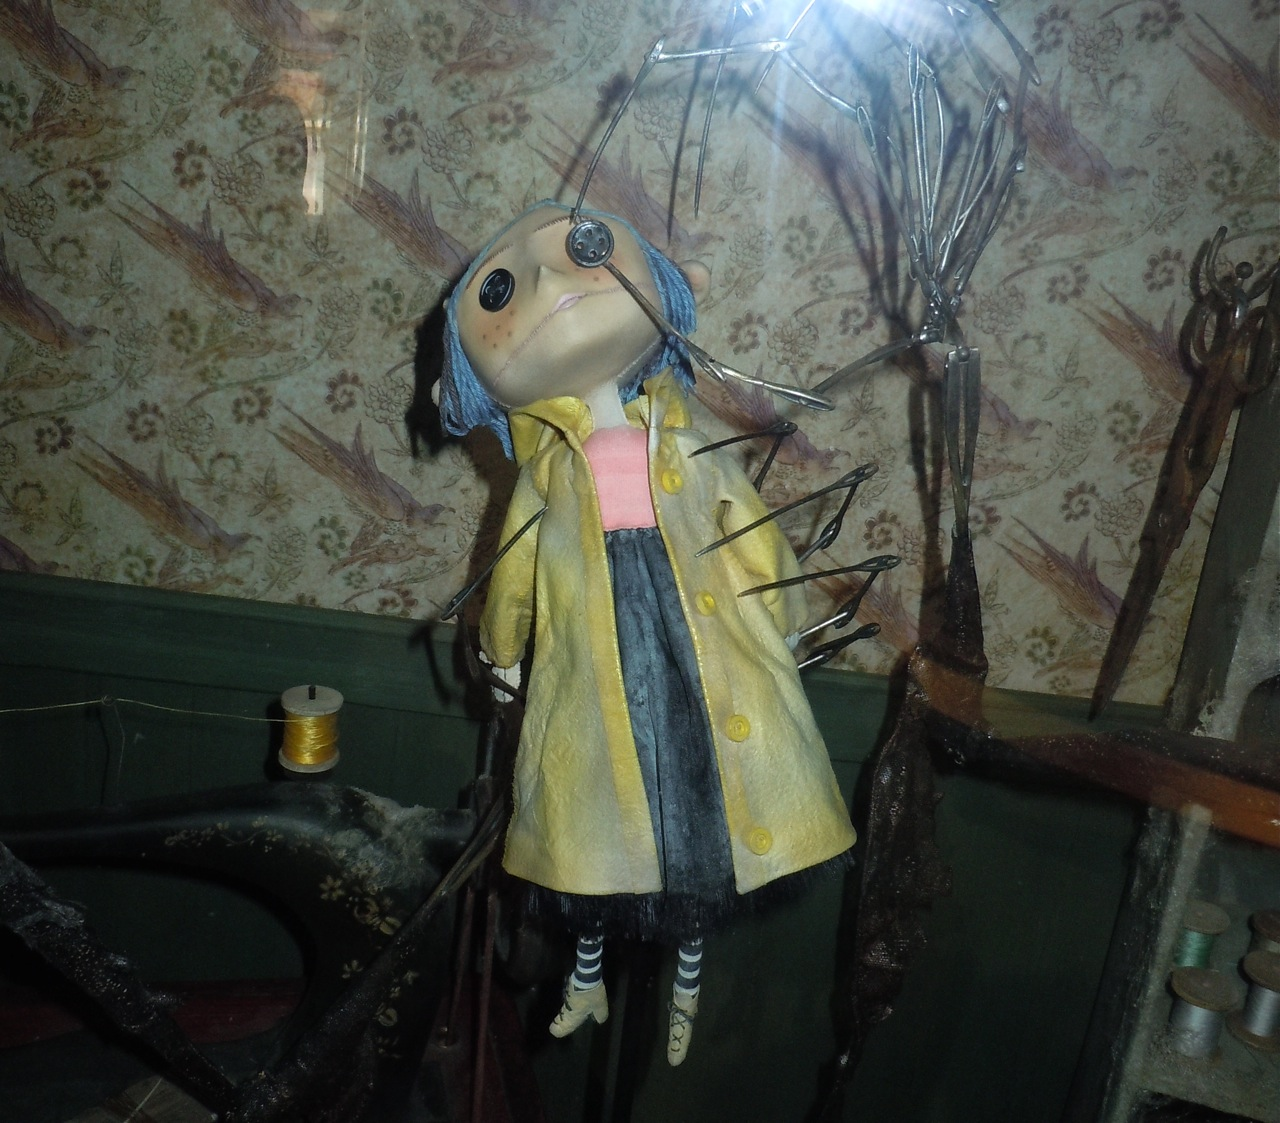 Hollywood Movie Costumes and Props: The world of Coraline ...